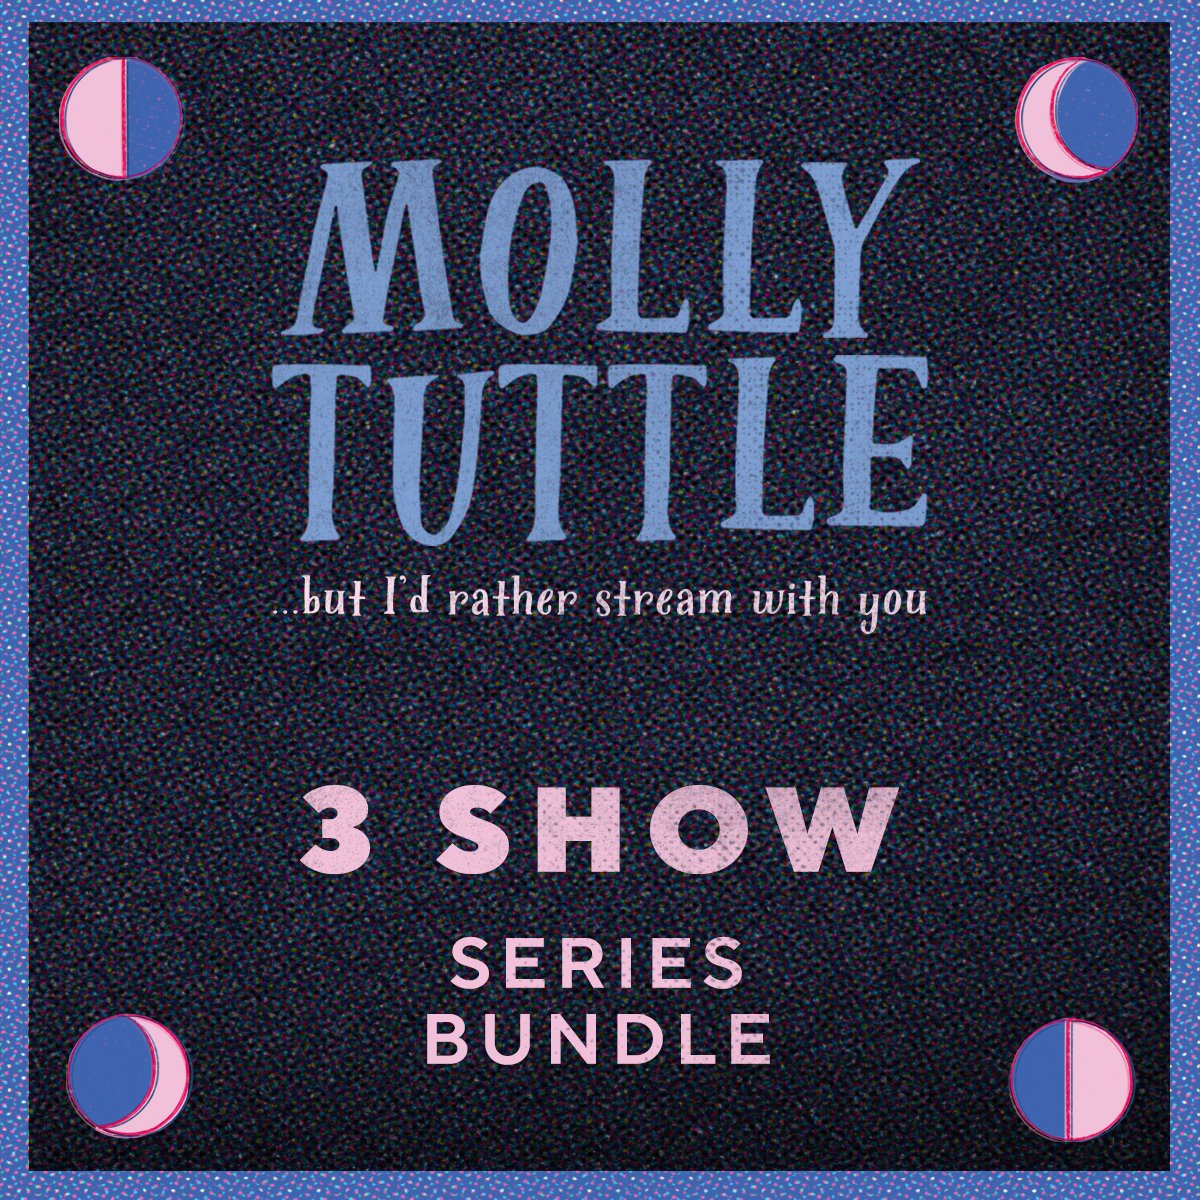 We are proud to partner with the legendary @mollytuttle to bring you access to her LIVESTREAM performance series Thurs, Nov 19th, Thurs, Dec 3rd & Thurs, Dec 17th at 7pm CST! Tickets are $15 and on sale now at bit.ly/2HNEzlC #mollytuttle #mollytuttlelivestream